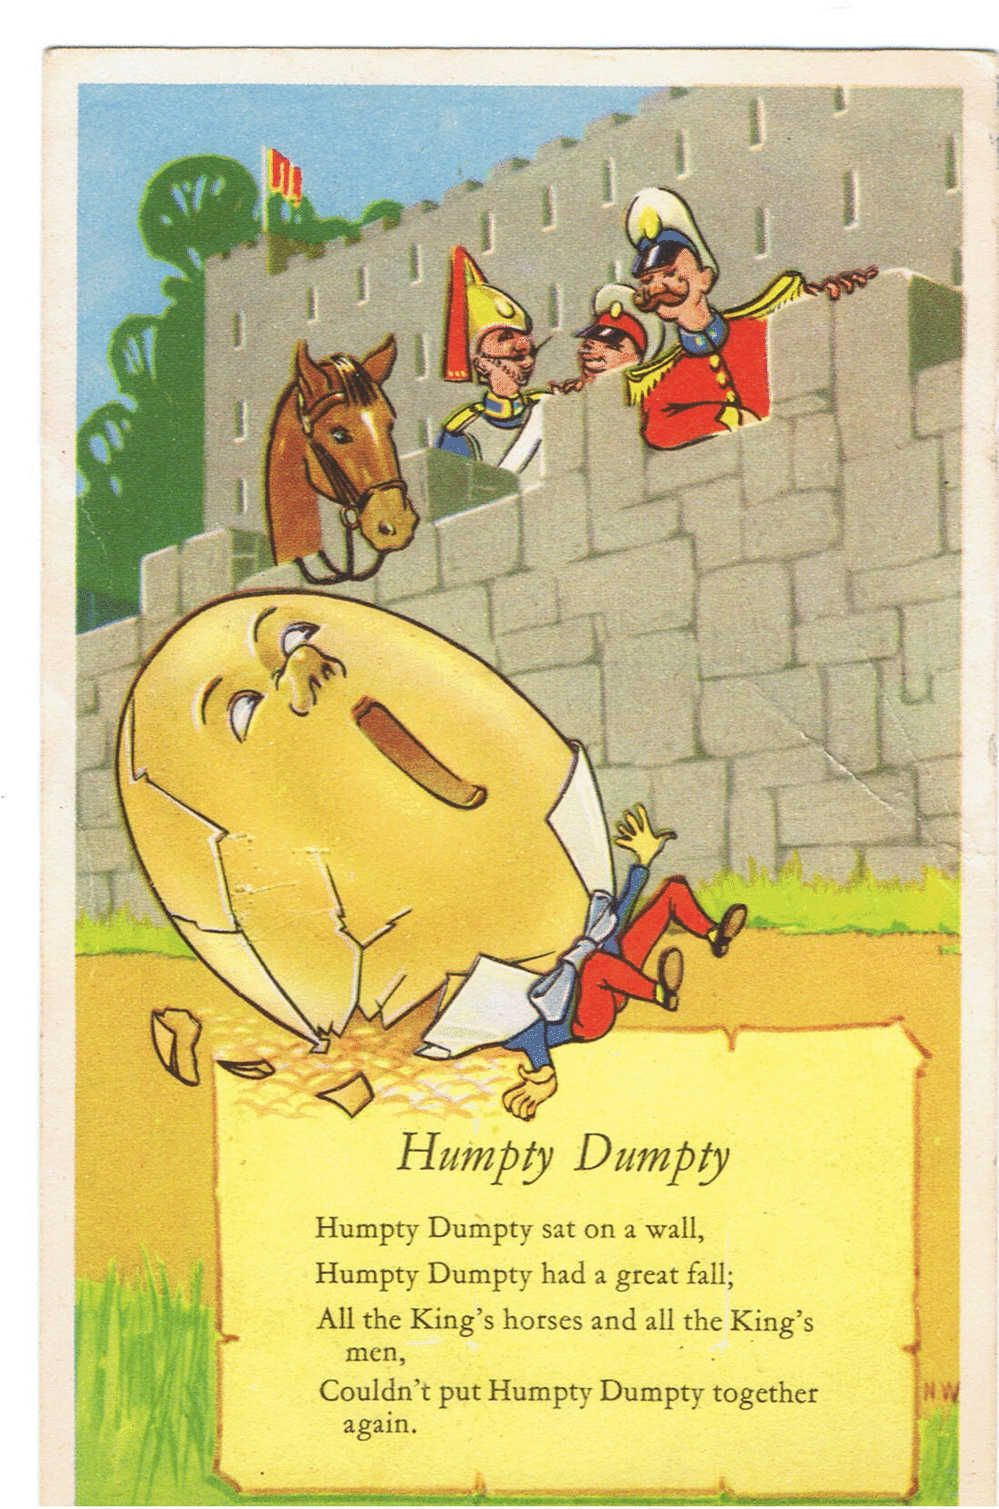 Humpty Dumpty Nursery Rhyme | Art | Pinterest | Humpty dumpty ...